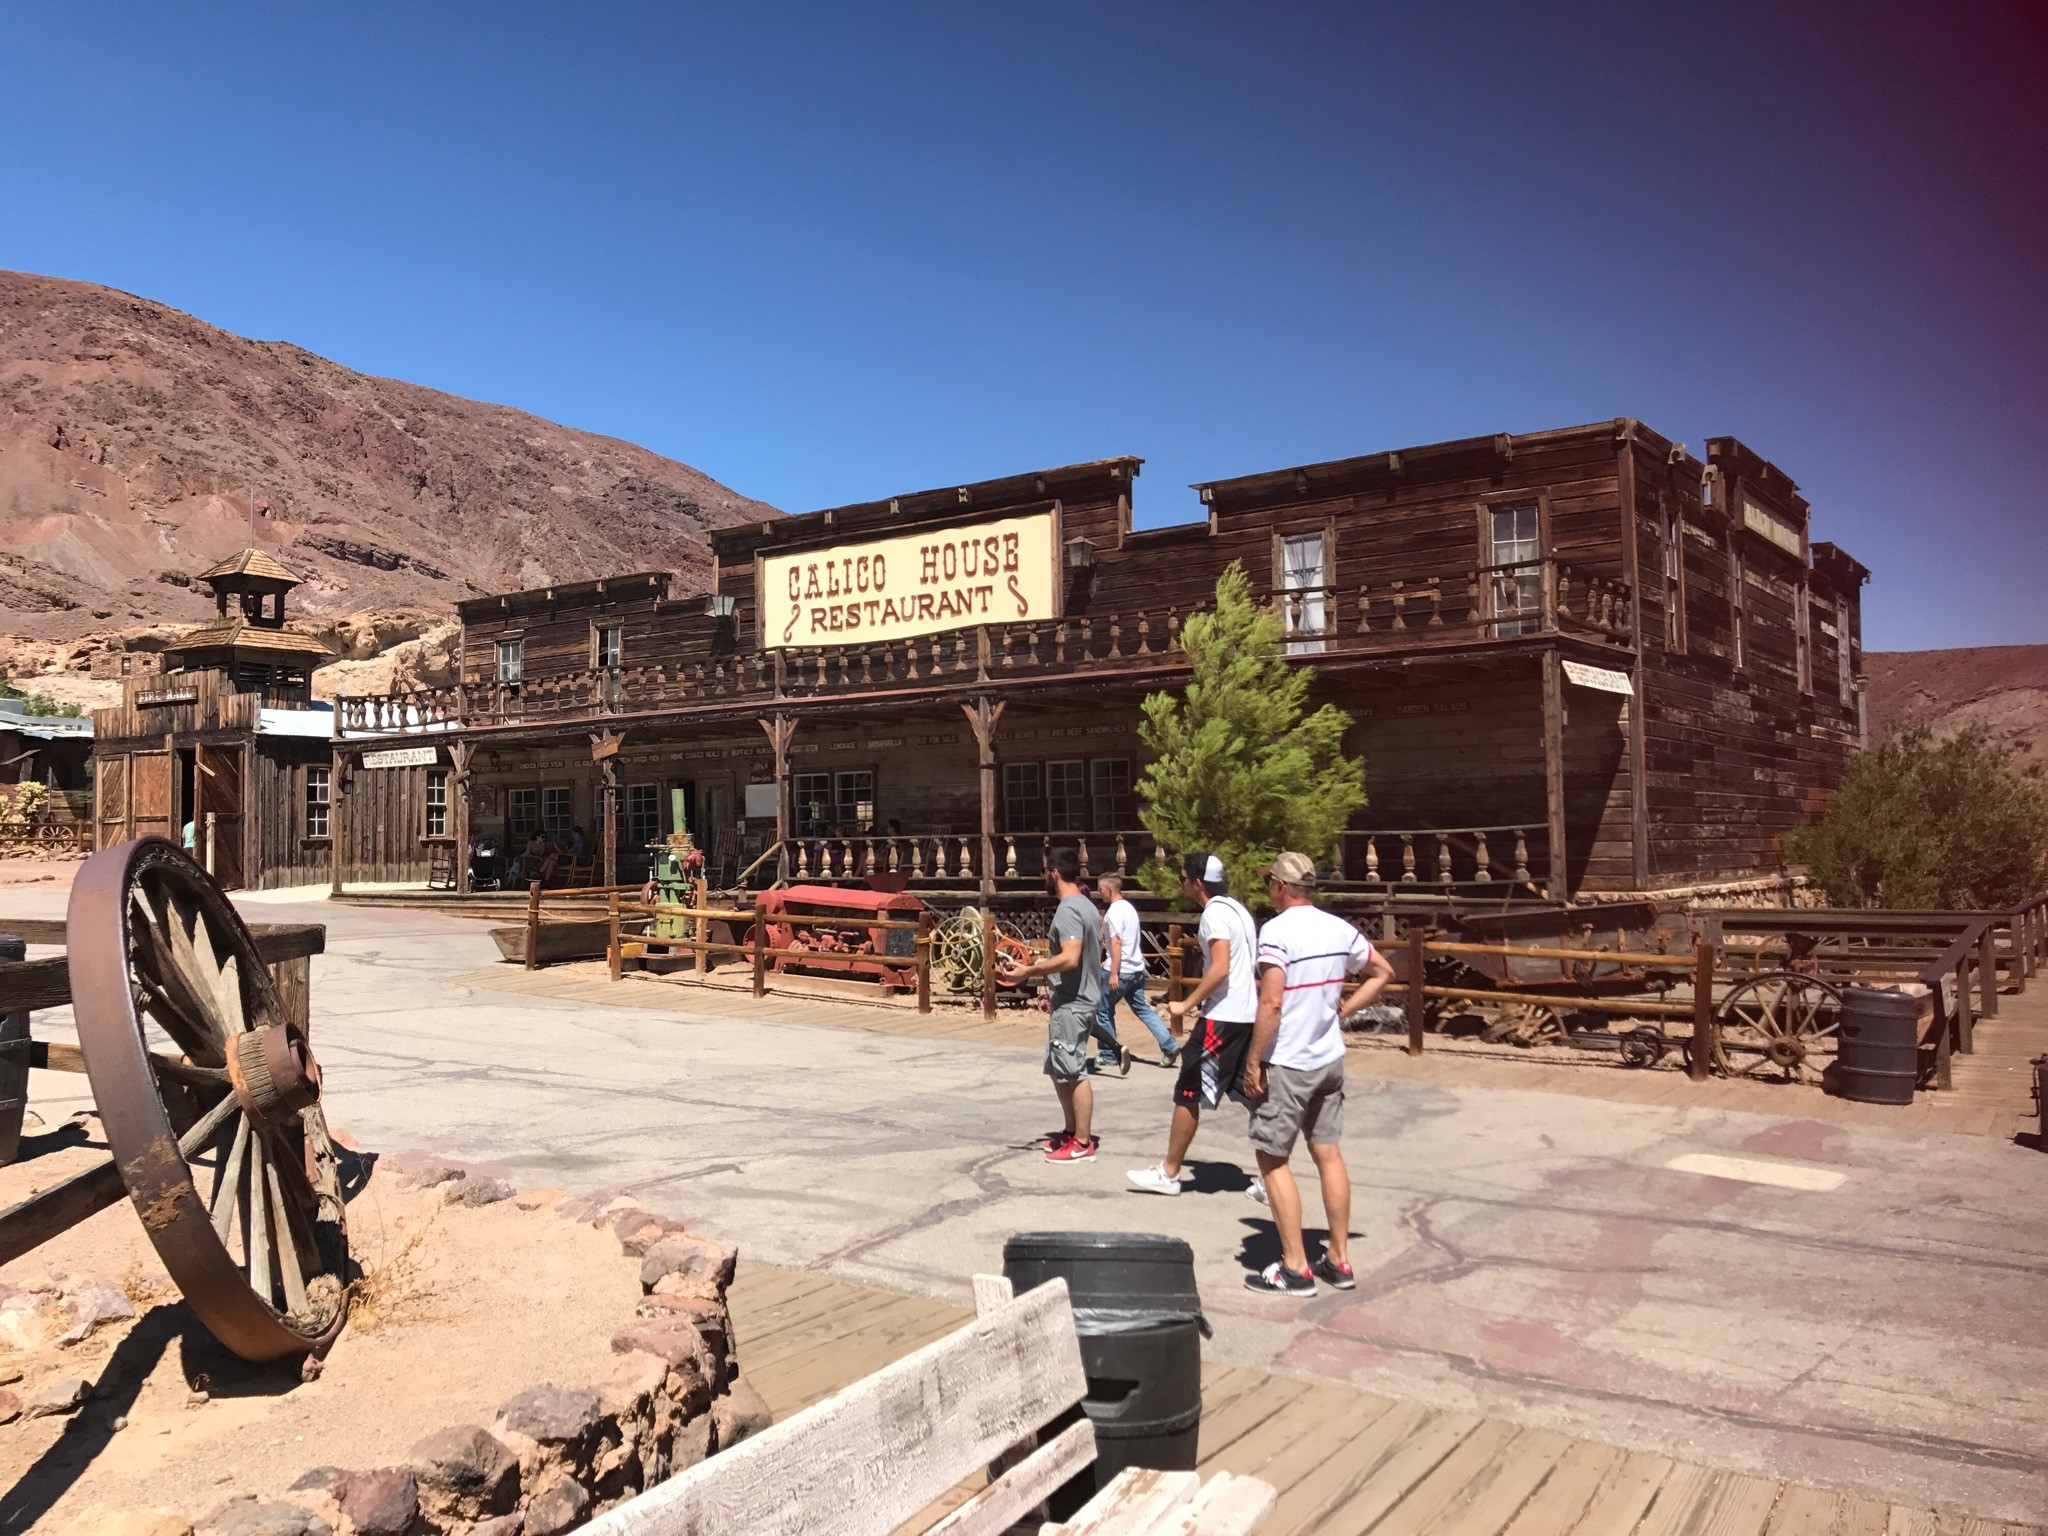 Jose Rodriguez visited the ghost town of Calico located in Southern California.